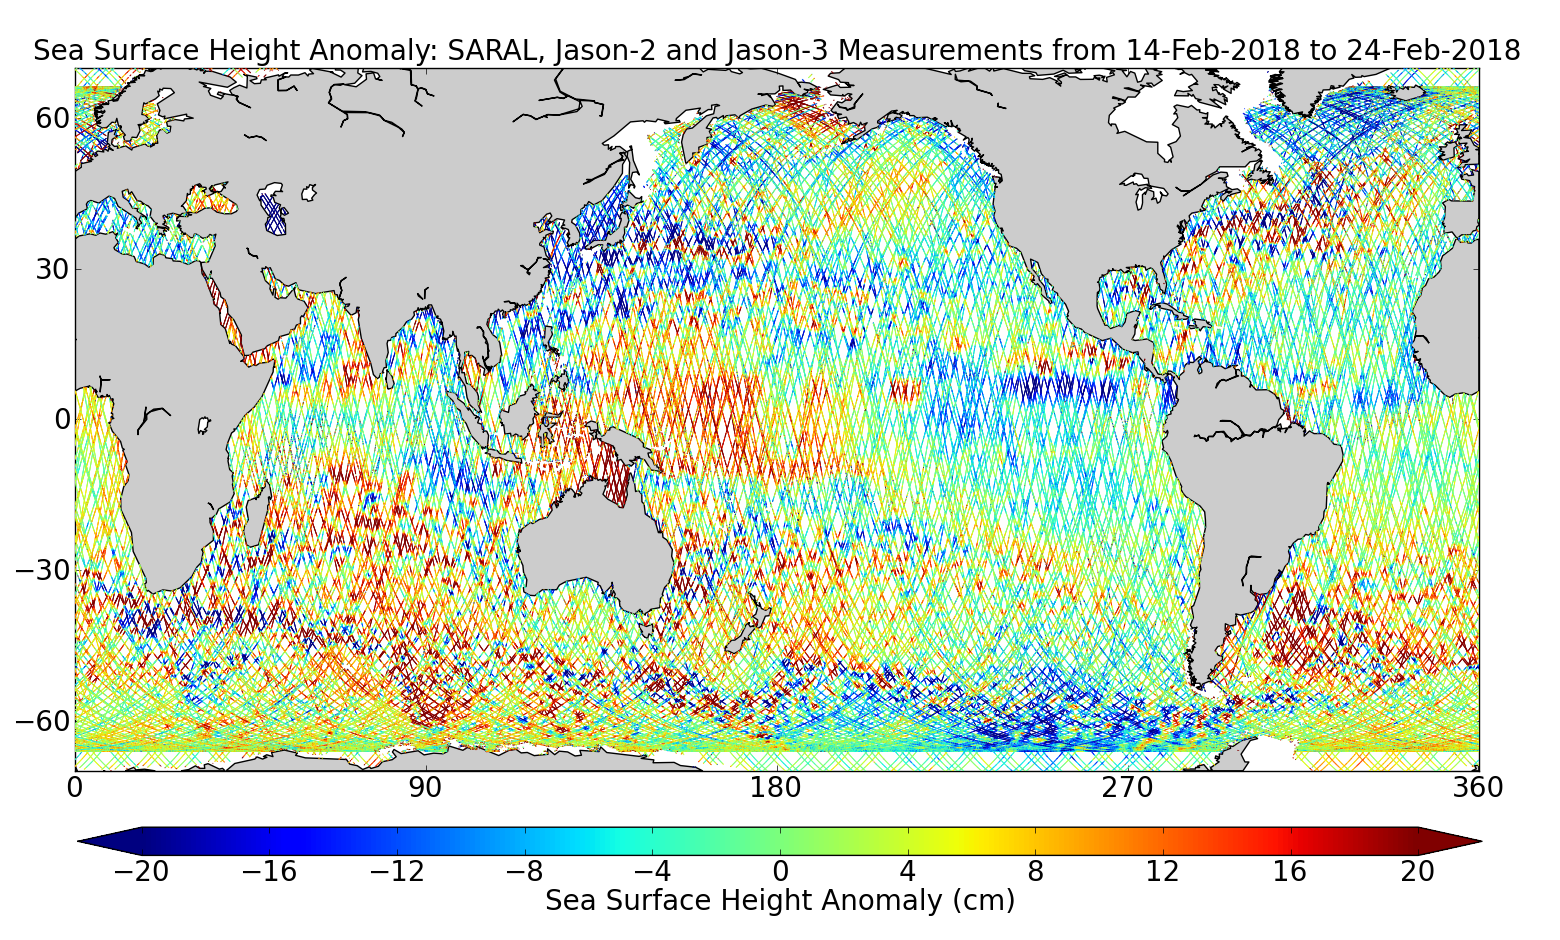 Sea Surface Height Anomaly: SARAL, Jason-2 and Jason-3 Measurements from 14-Feb-2018 to 24-Feb-2018